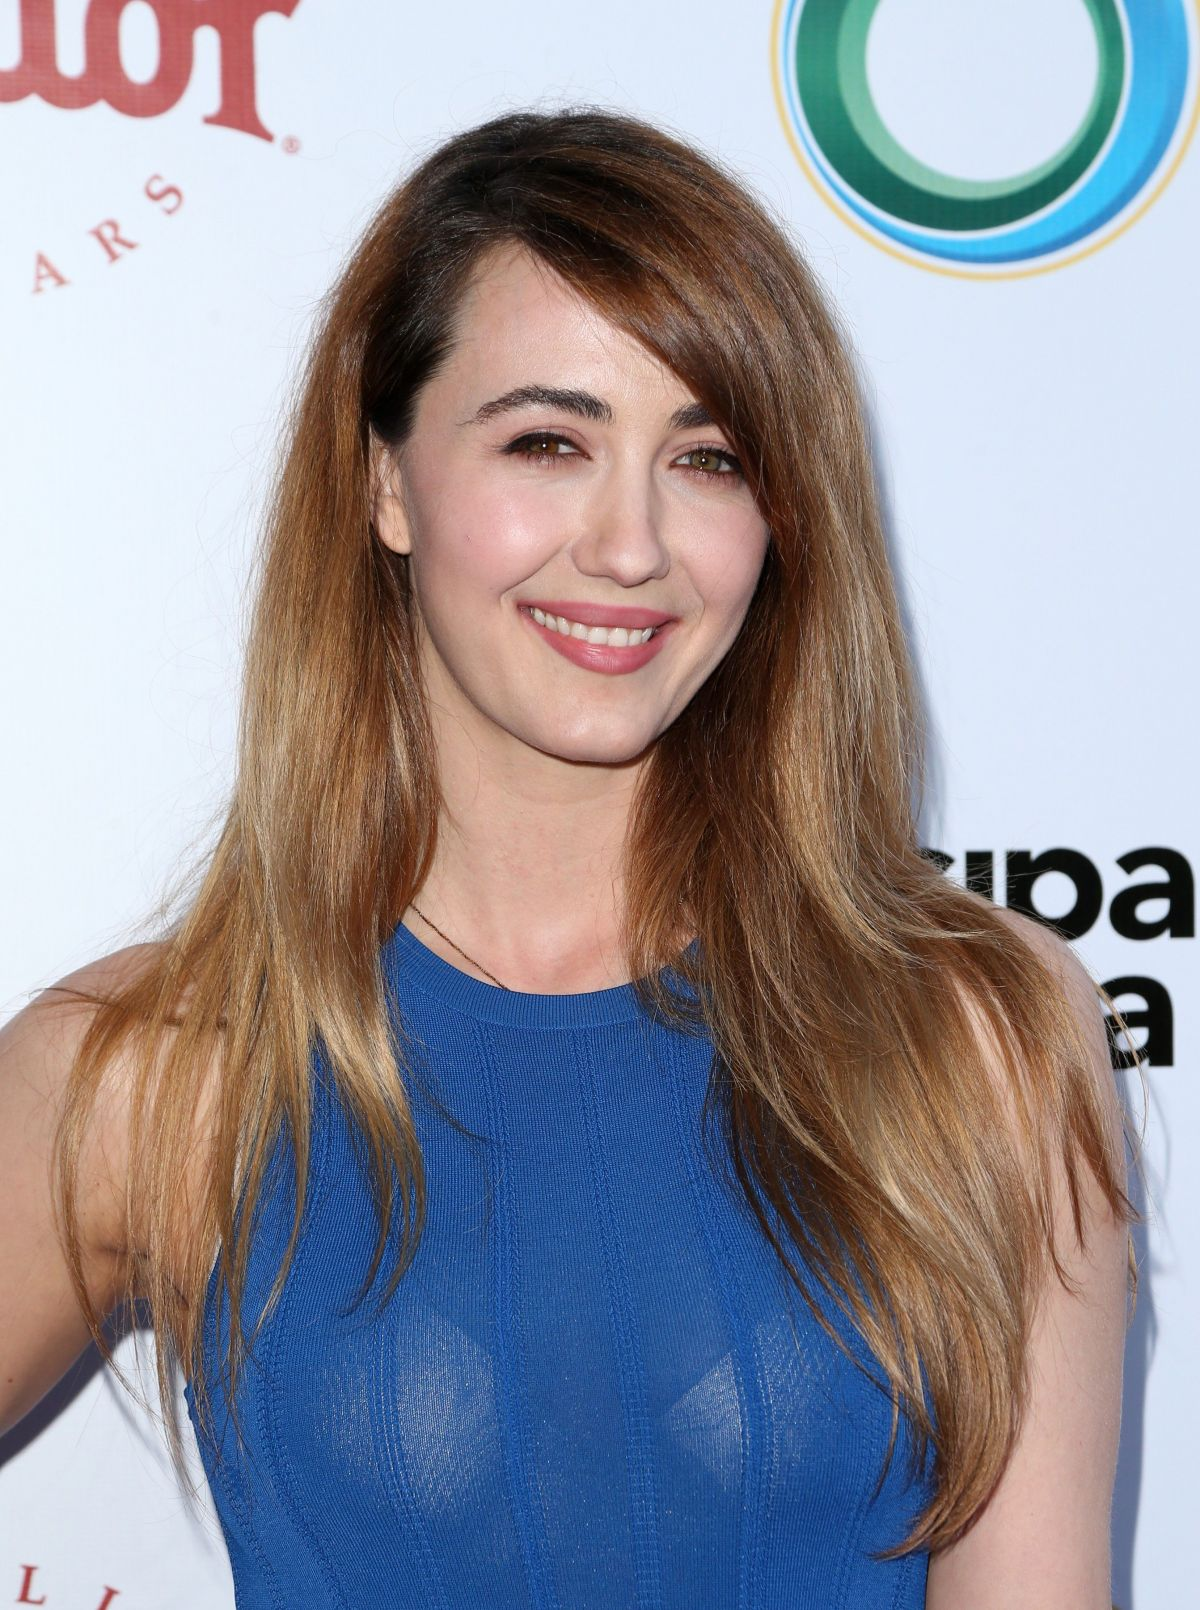 Images Madeline Zima naked (14 photo), Tits, Cleavage, Boobs, braless 2015